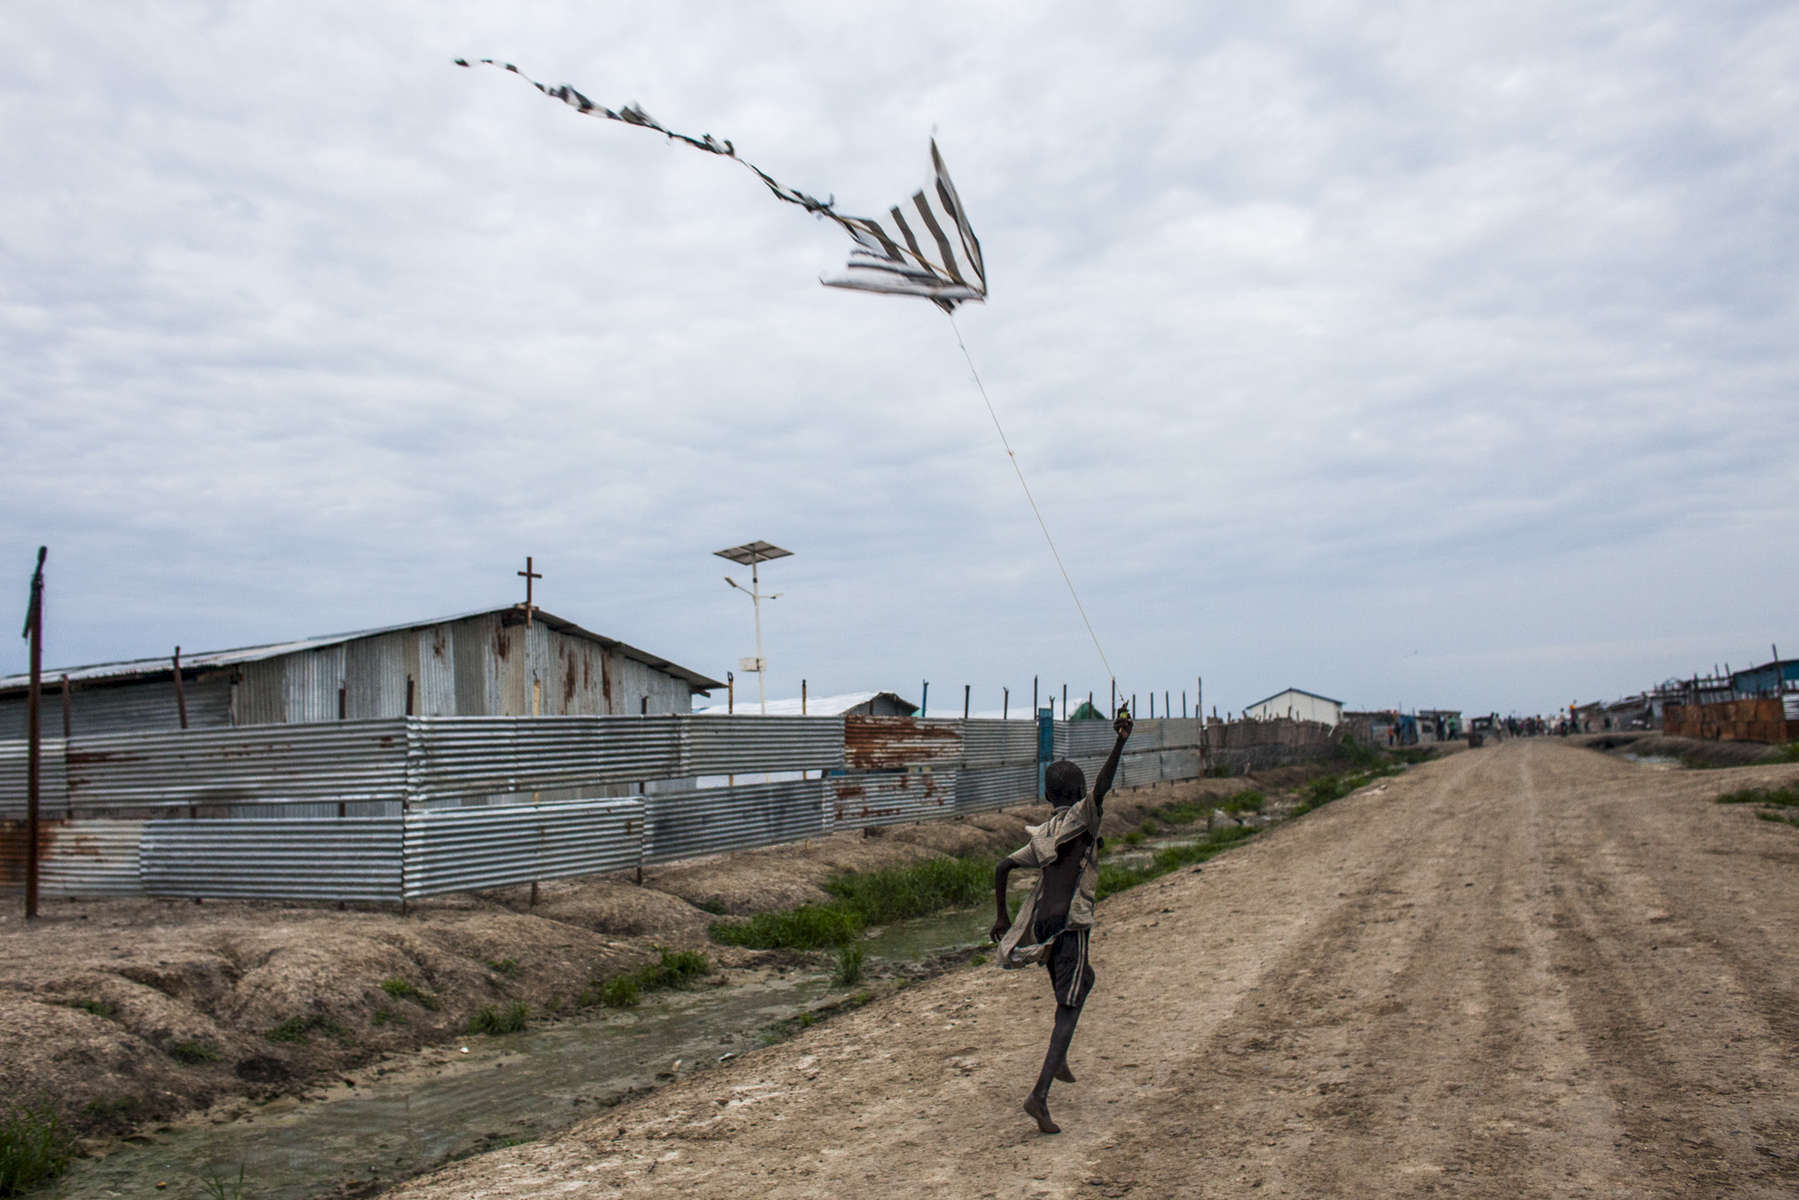 A boy flies a kite made from plastic bags in the Protection of Civilians (POC) site at the United Nations Mission in South Sudan (UNMISS) base in Malakal, South Sudan on Thursday, July 7, 2016. The POC site houses close to 32,000 displaced people mainly from the Shilluk and Nuer tribes in the Upper Nile State. In February of this year, violence broke out inside the camp as many armed members of the Dinka tribe, who resided in the camp at the time, along with members of the SPLA who infiltrated the camp, attacked the Shilluk and Nuer in the camp destroying large sections of the site resulting in many wounded and dead. The UN came under scrutiny due to the slow response of the peacekeepers to protect the civilians during the two day ordeal. During the violence, thousands demanded entrance into the UNMISS base at Charlie gate, seeking safety, but the opening of the gate was delayed for protection of the UN.